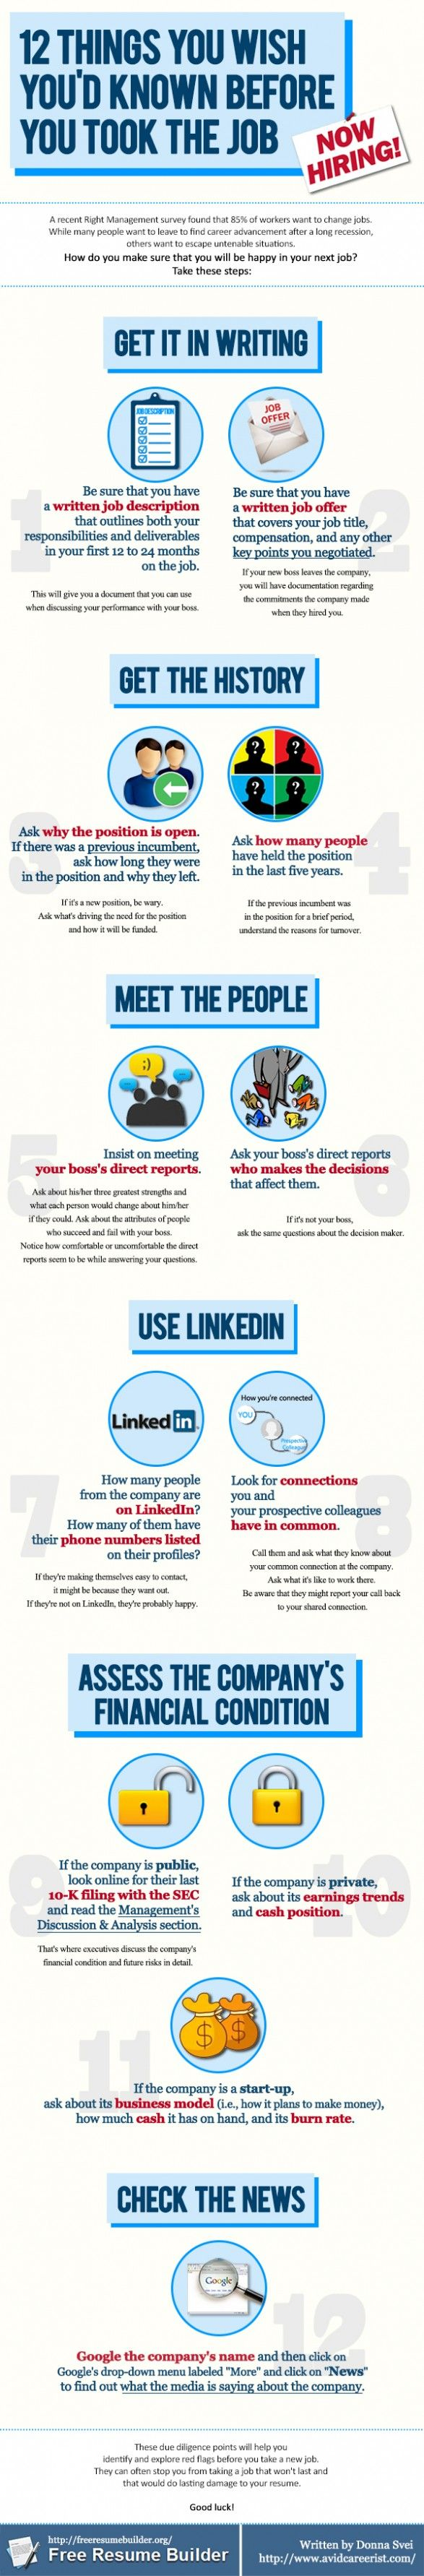 12 Things You Wish Youu0027d Known Before You Took The Job U2014 Infographic